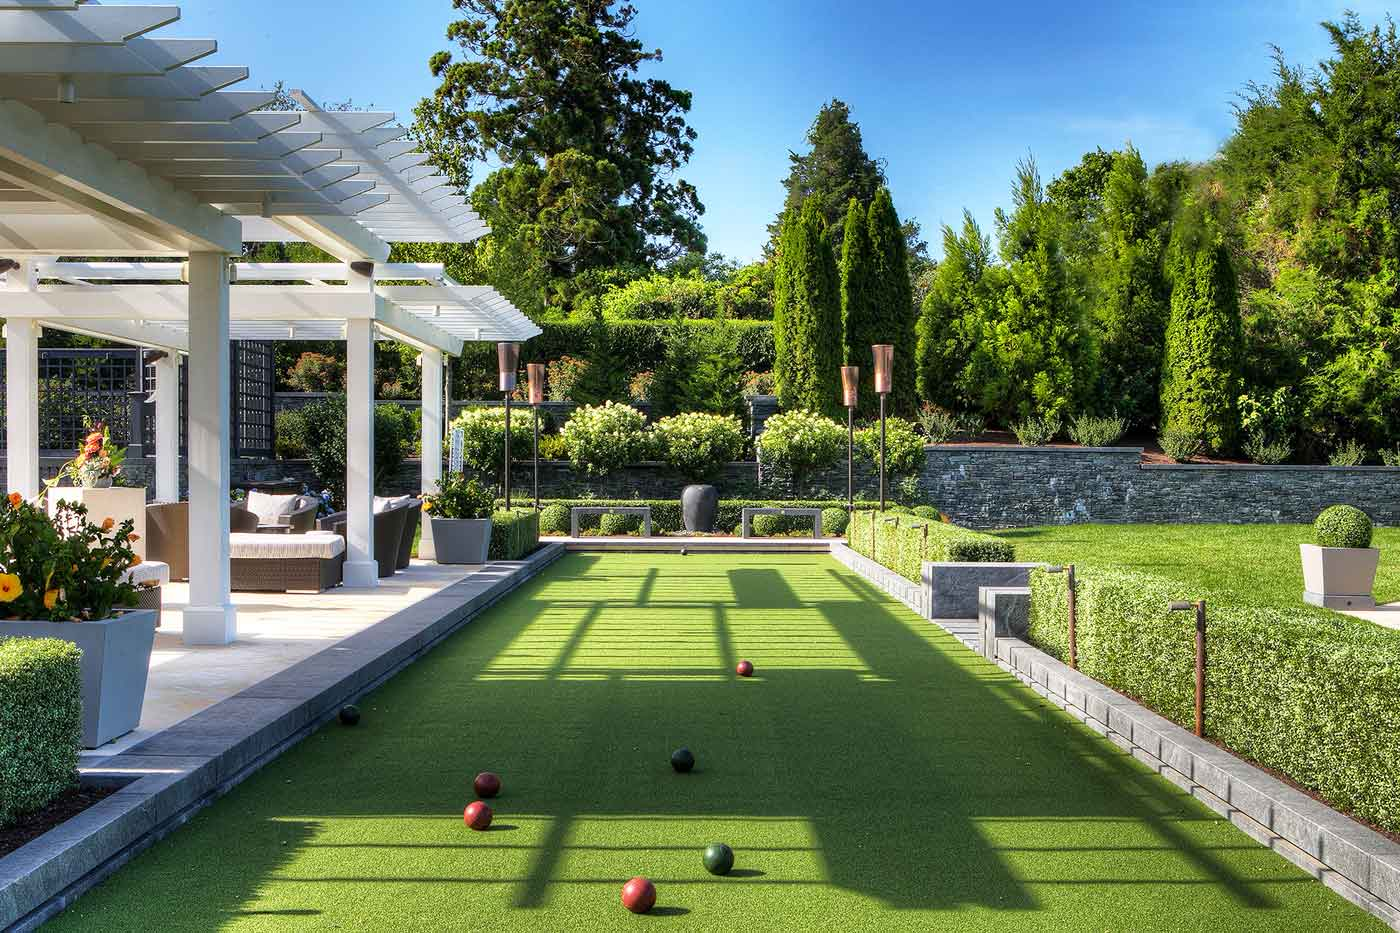 Bocce ball court designed by Katherine Field and Associates